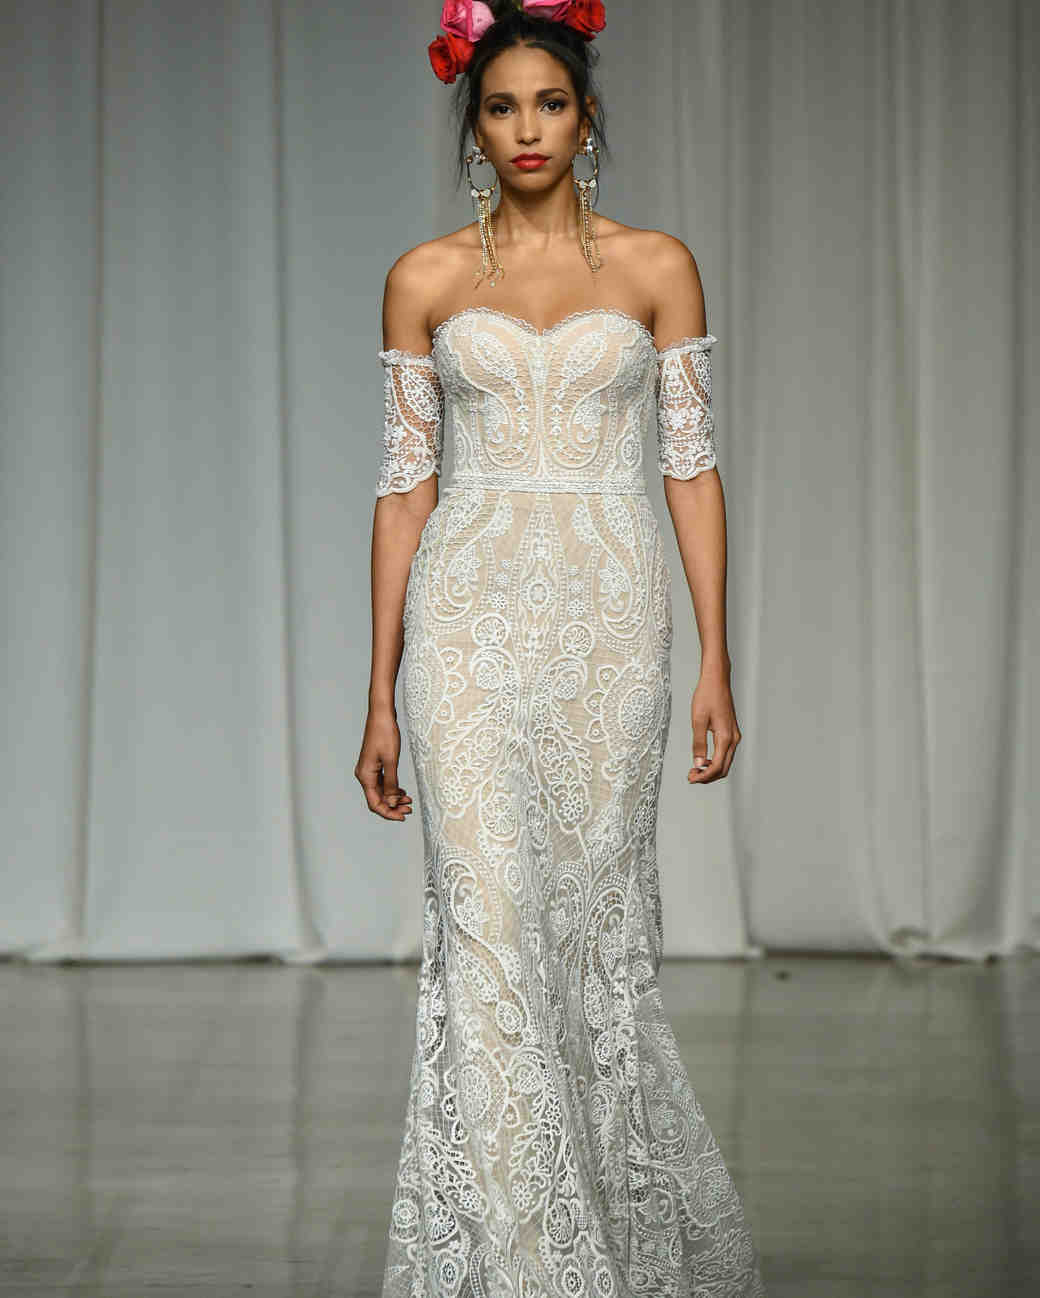 julie vino group fall 2019 sheath over the shoulder sheer wedding dress